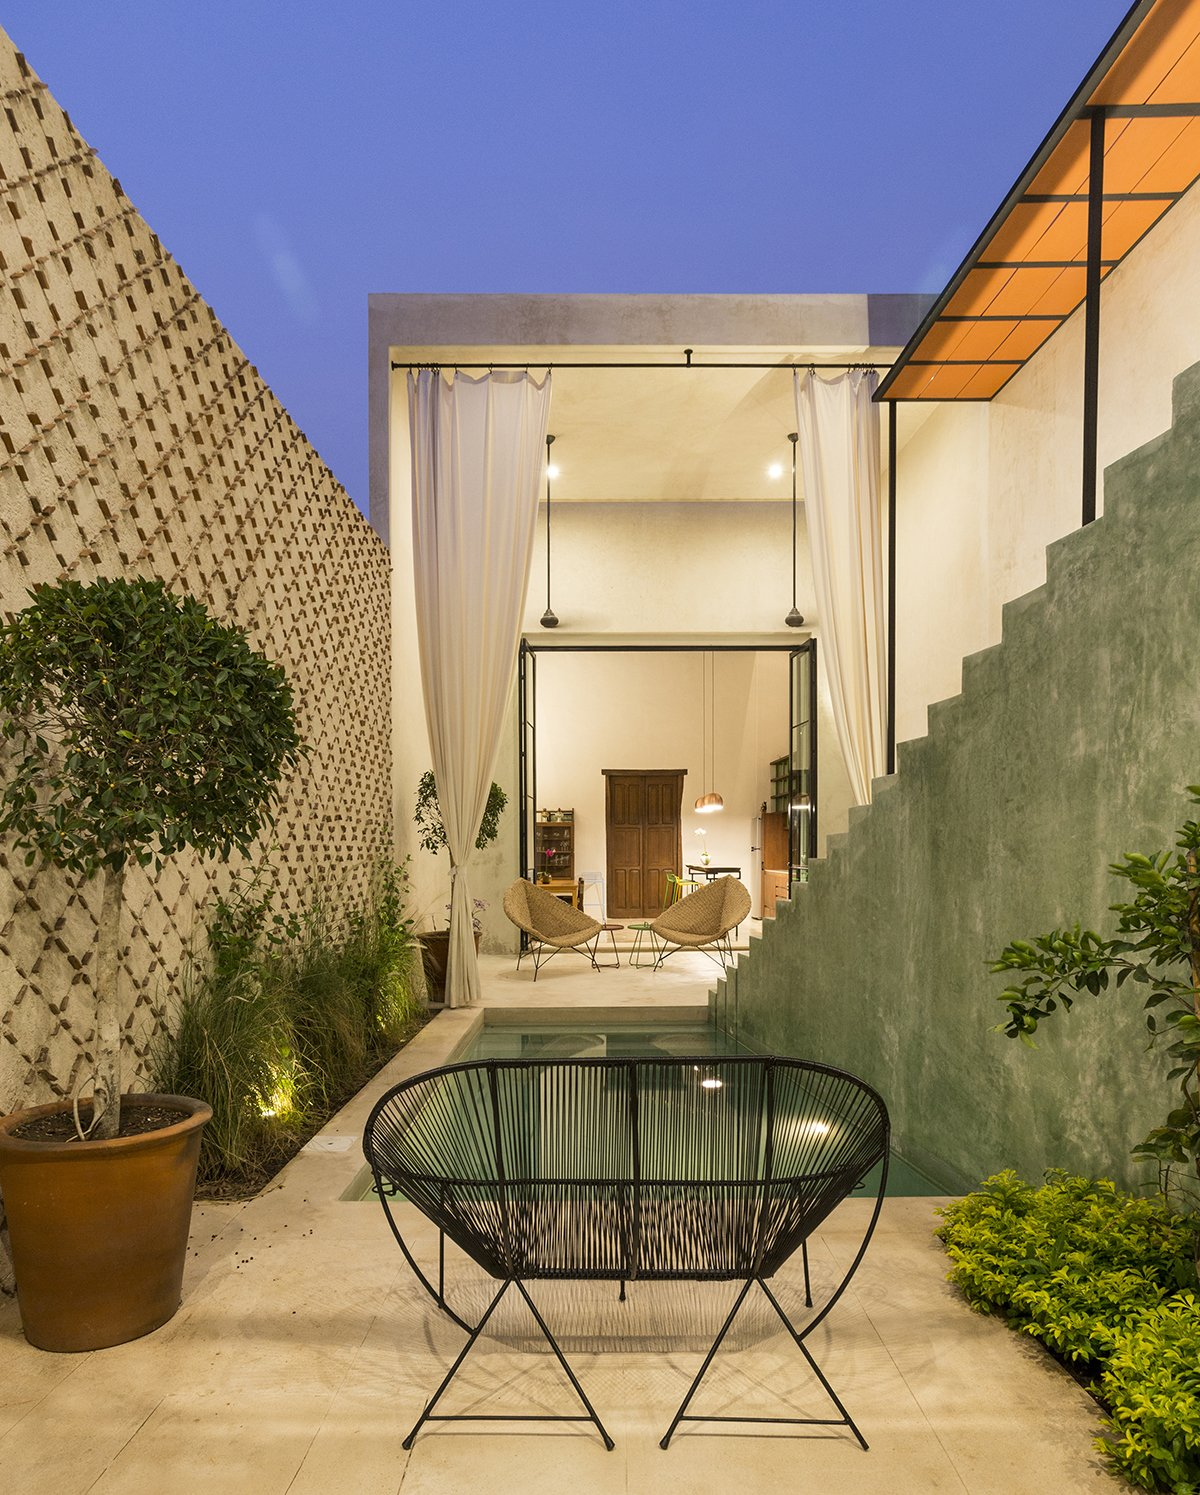 Outdoor, Plunge Pools, Tubs, Shower, Trees, Grass, and Small Patio, Porch, Deck A panoramic view from the seating area outside of the downstairs bedroom  Lemon Tree House by Taller Estilo Arquitectura S de R.L de C.V